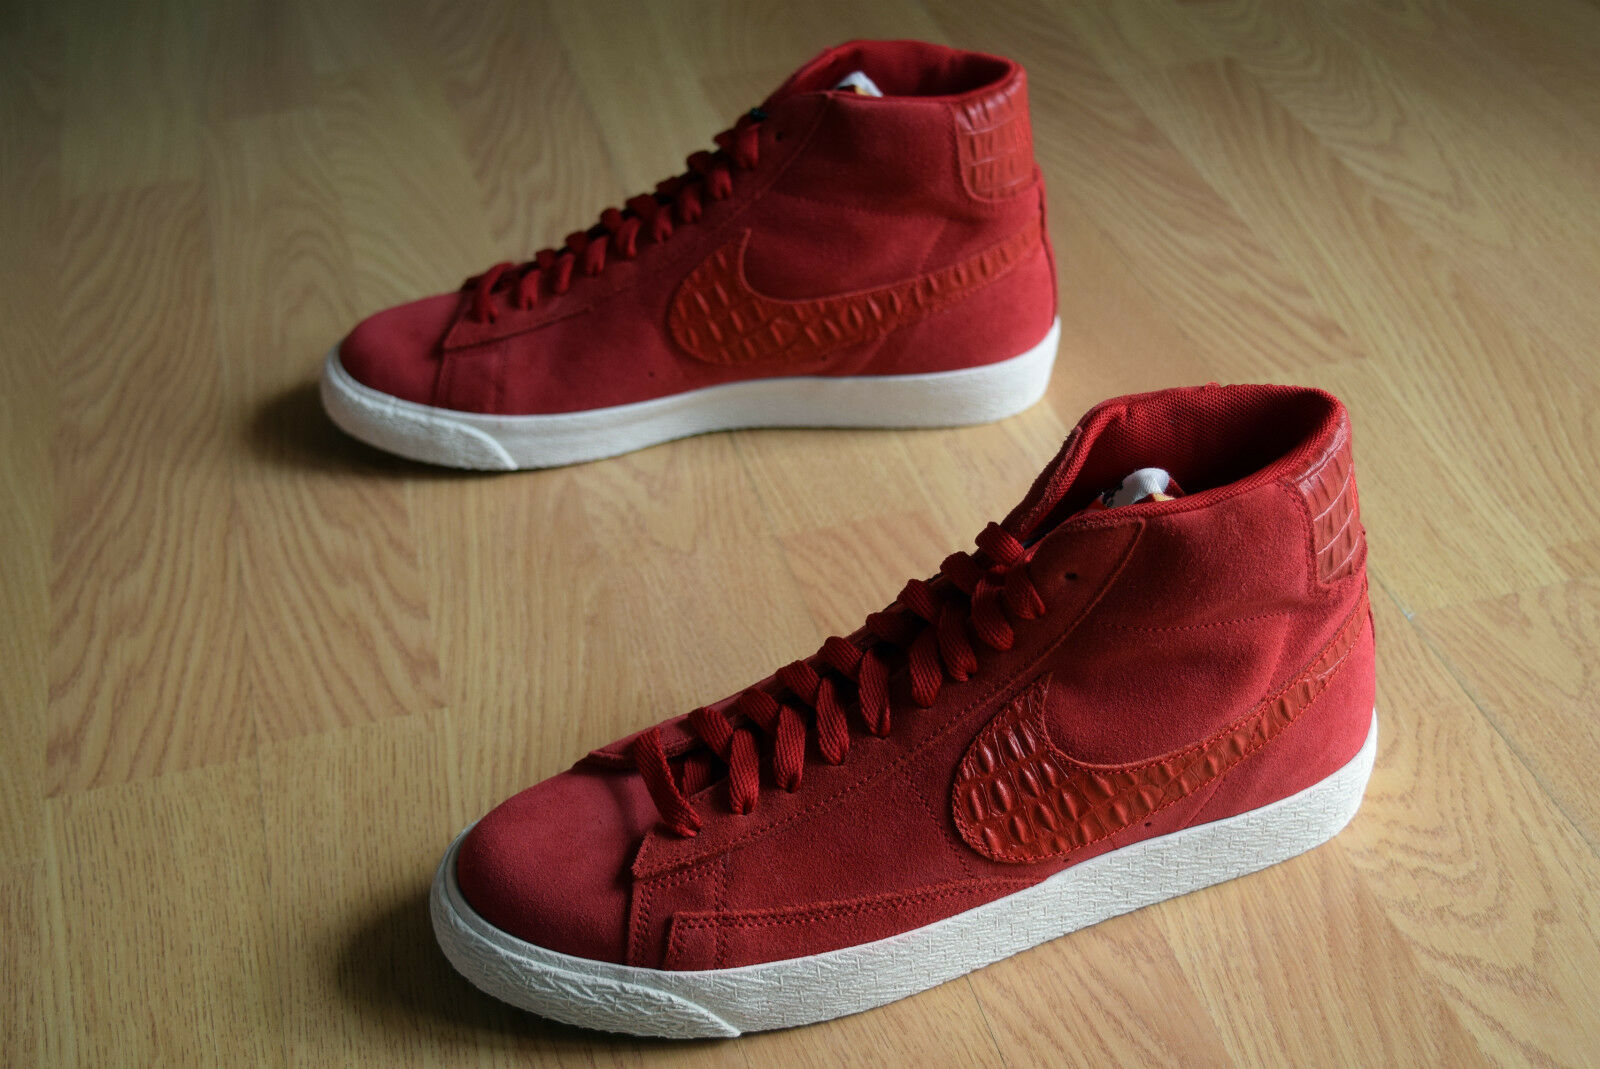 Nike Blazer Mid PRM Vintage 39 40 42 43 44 45 46 638261 601 Air Force 1 QS New shoes for men and women, limited time discount